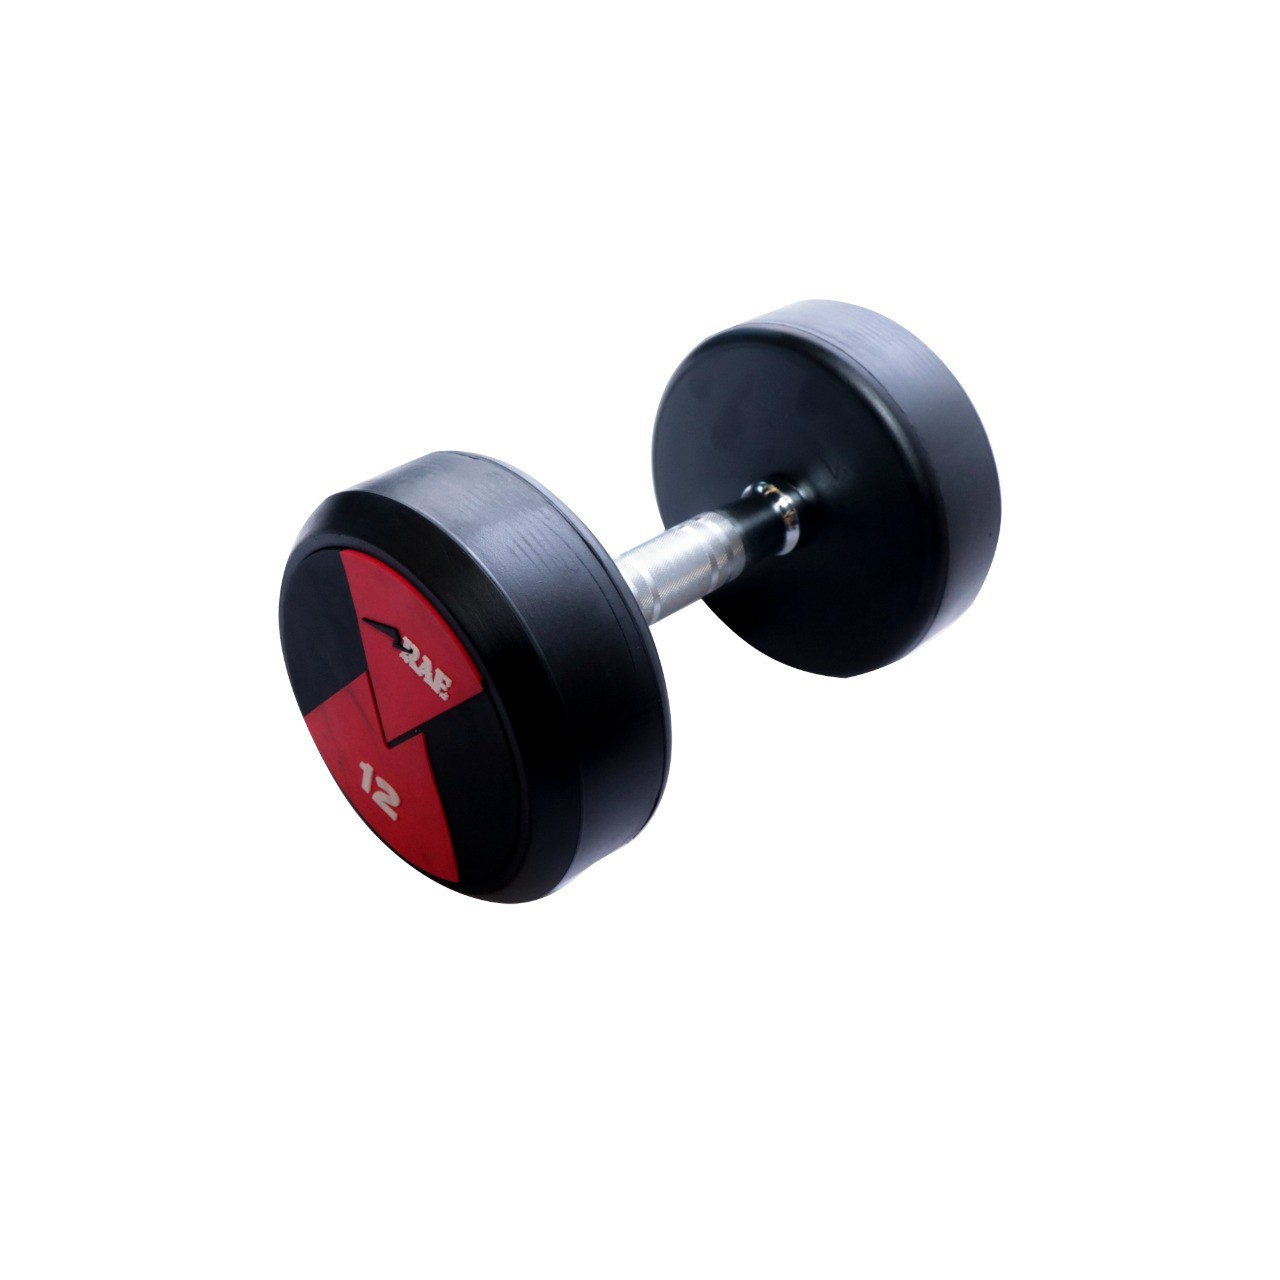 OUTLET - KIT DUMBELLS RAE POWER HEAVY COM 6 PARES